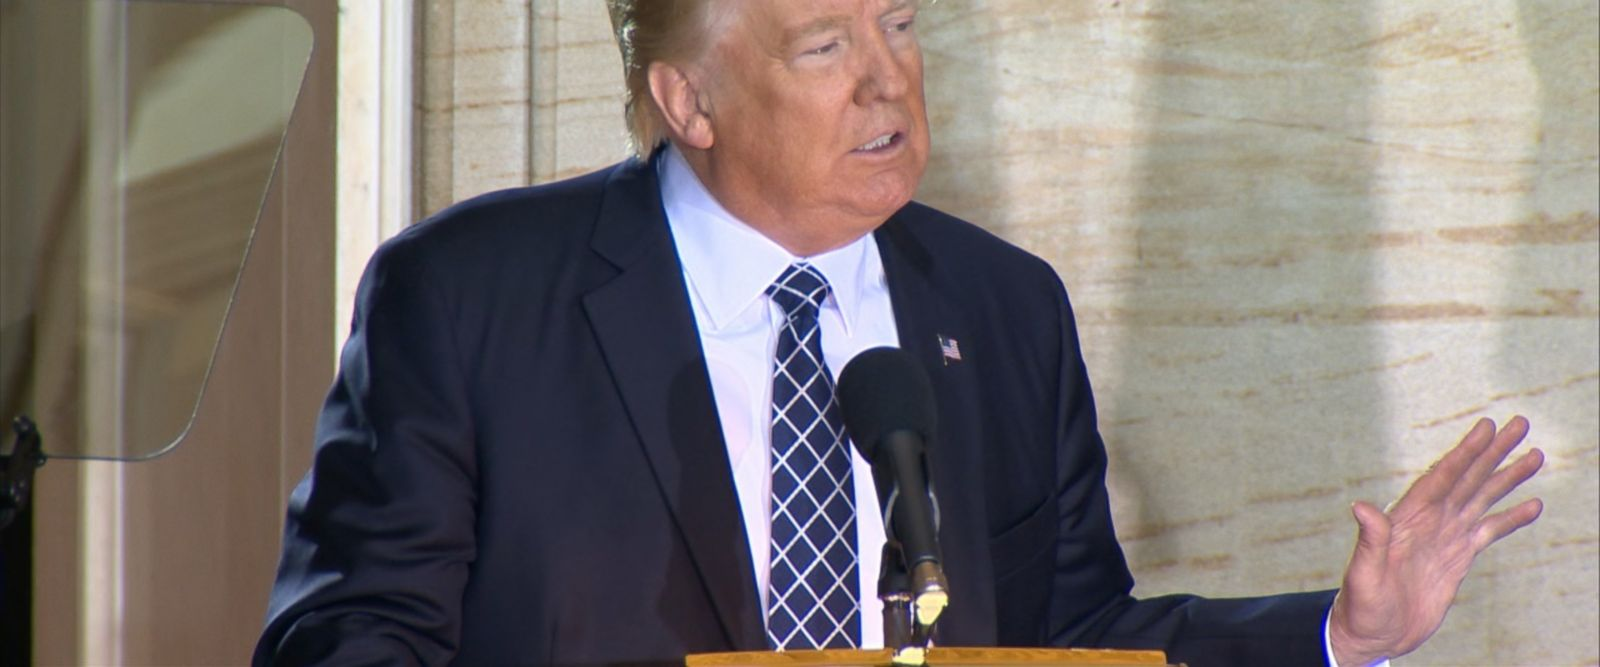 """We will never, ever be silent in the face of evil again,"" President Donald Trump said today in a speech commemorating Holocaust Remembrance Day."